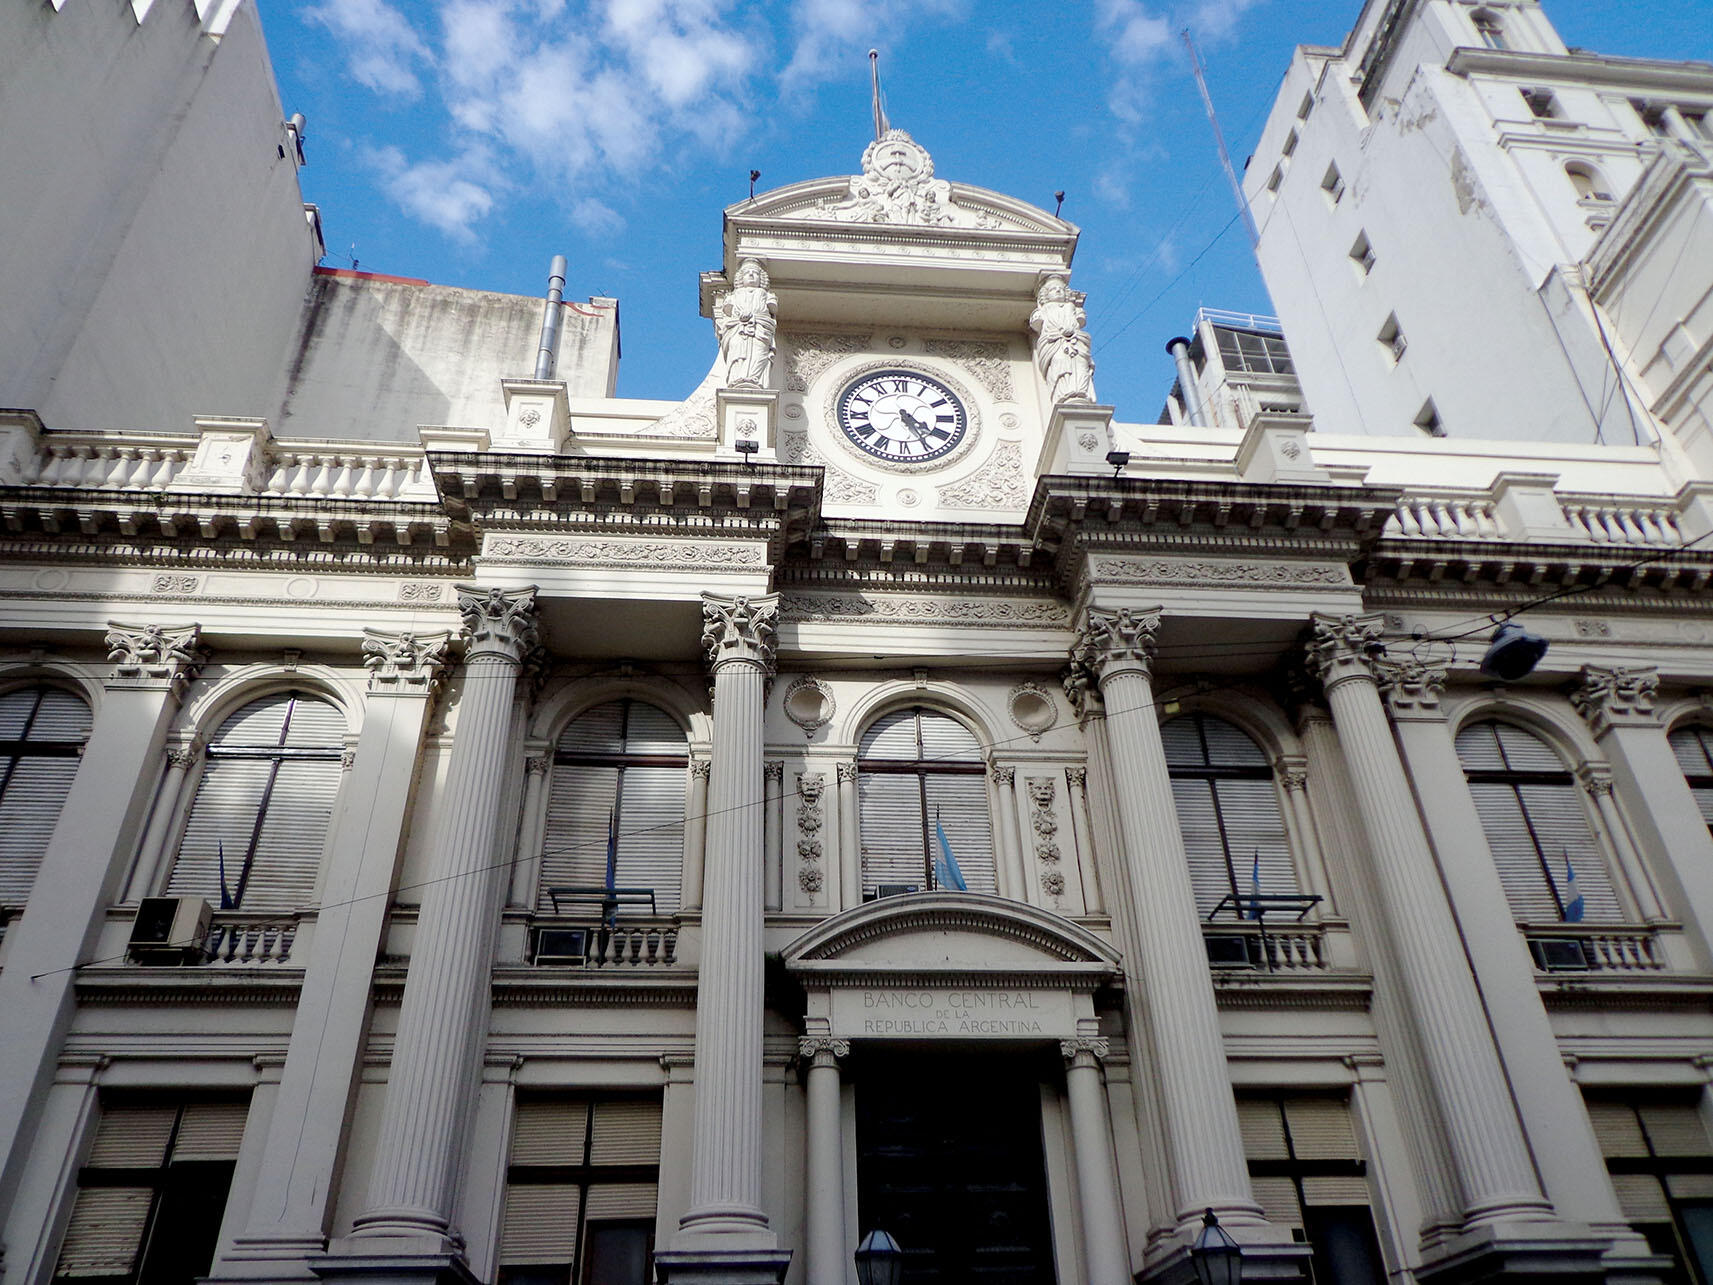 The Central Bank of Argentina, an imposing classical building in Buenos Aires. (Photo by Diana2803.)